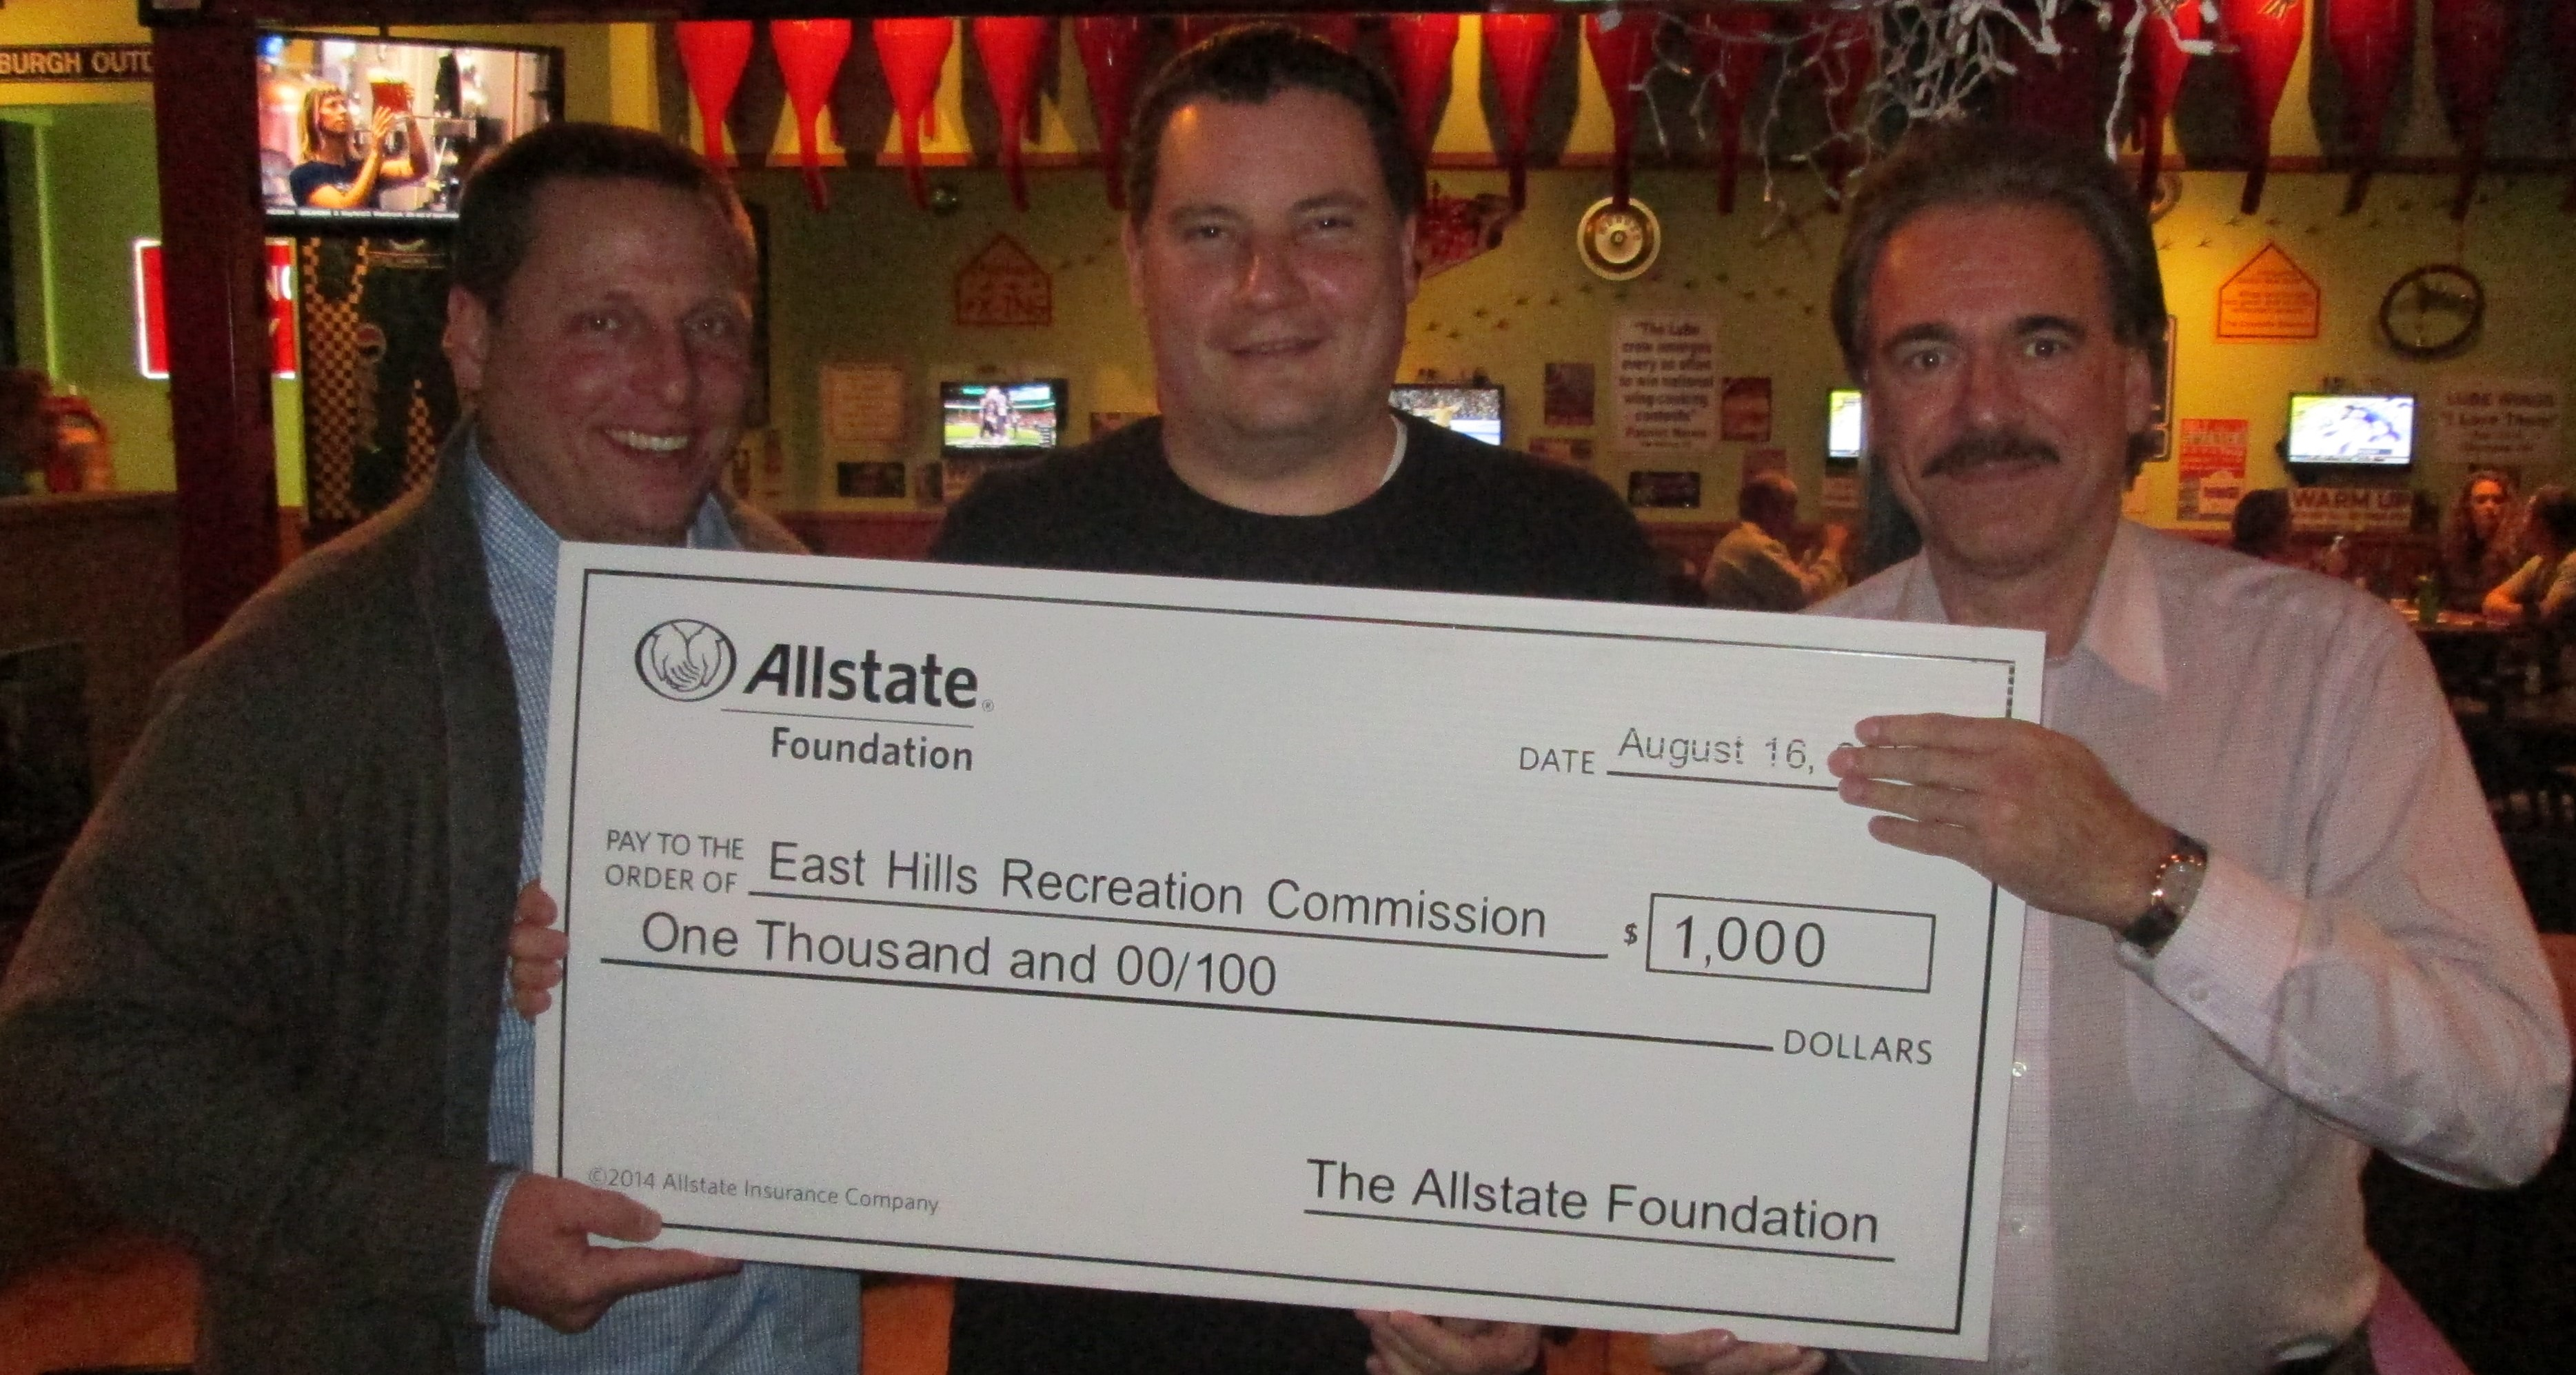 Allstate Foundation Grant - East Hills Recreation 2016 (2)